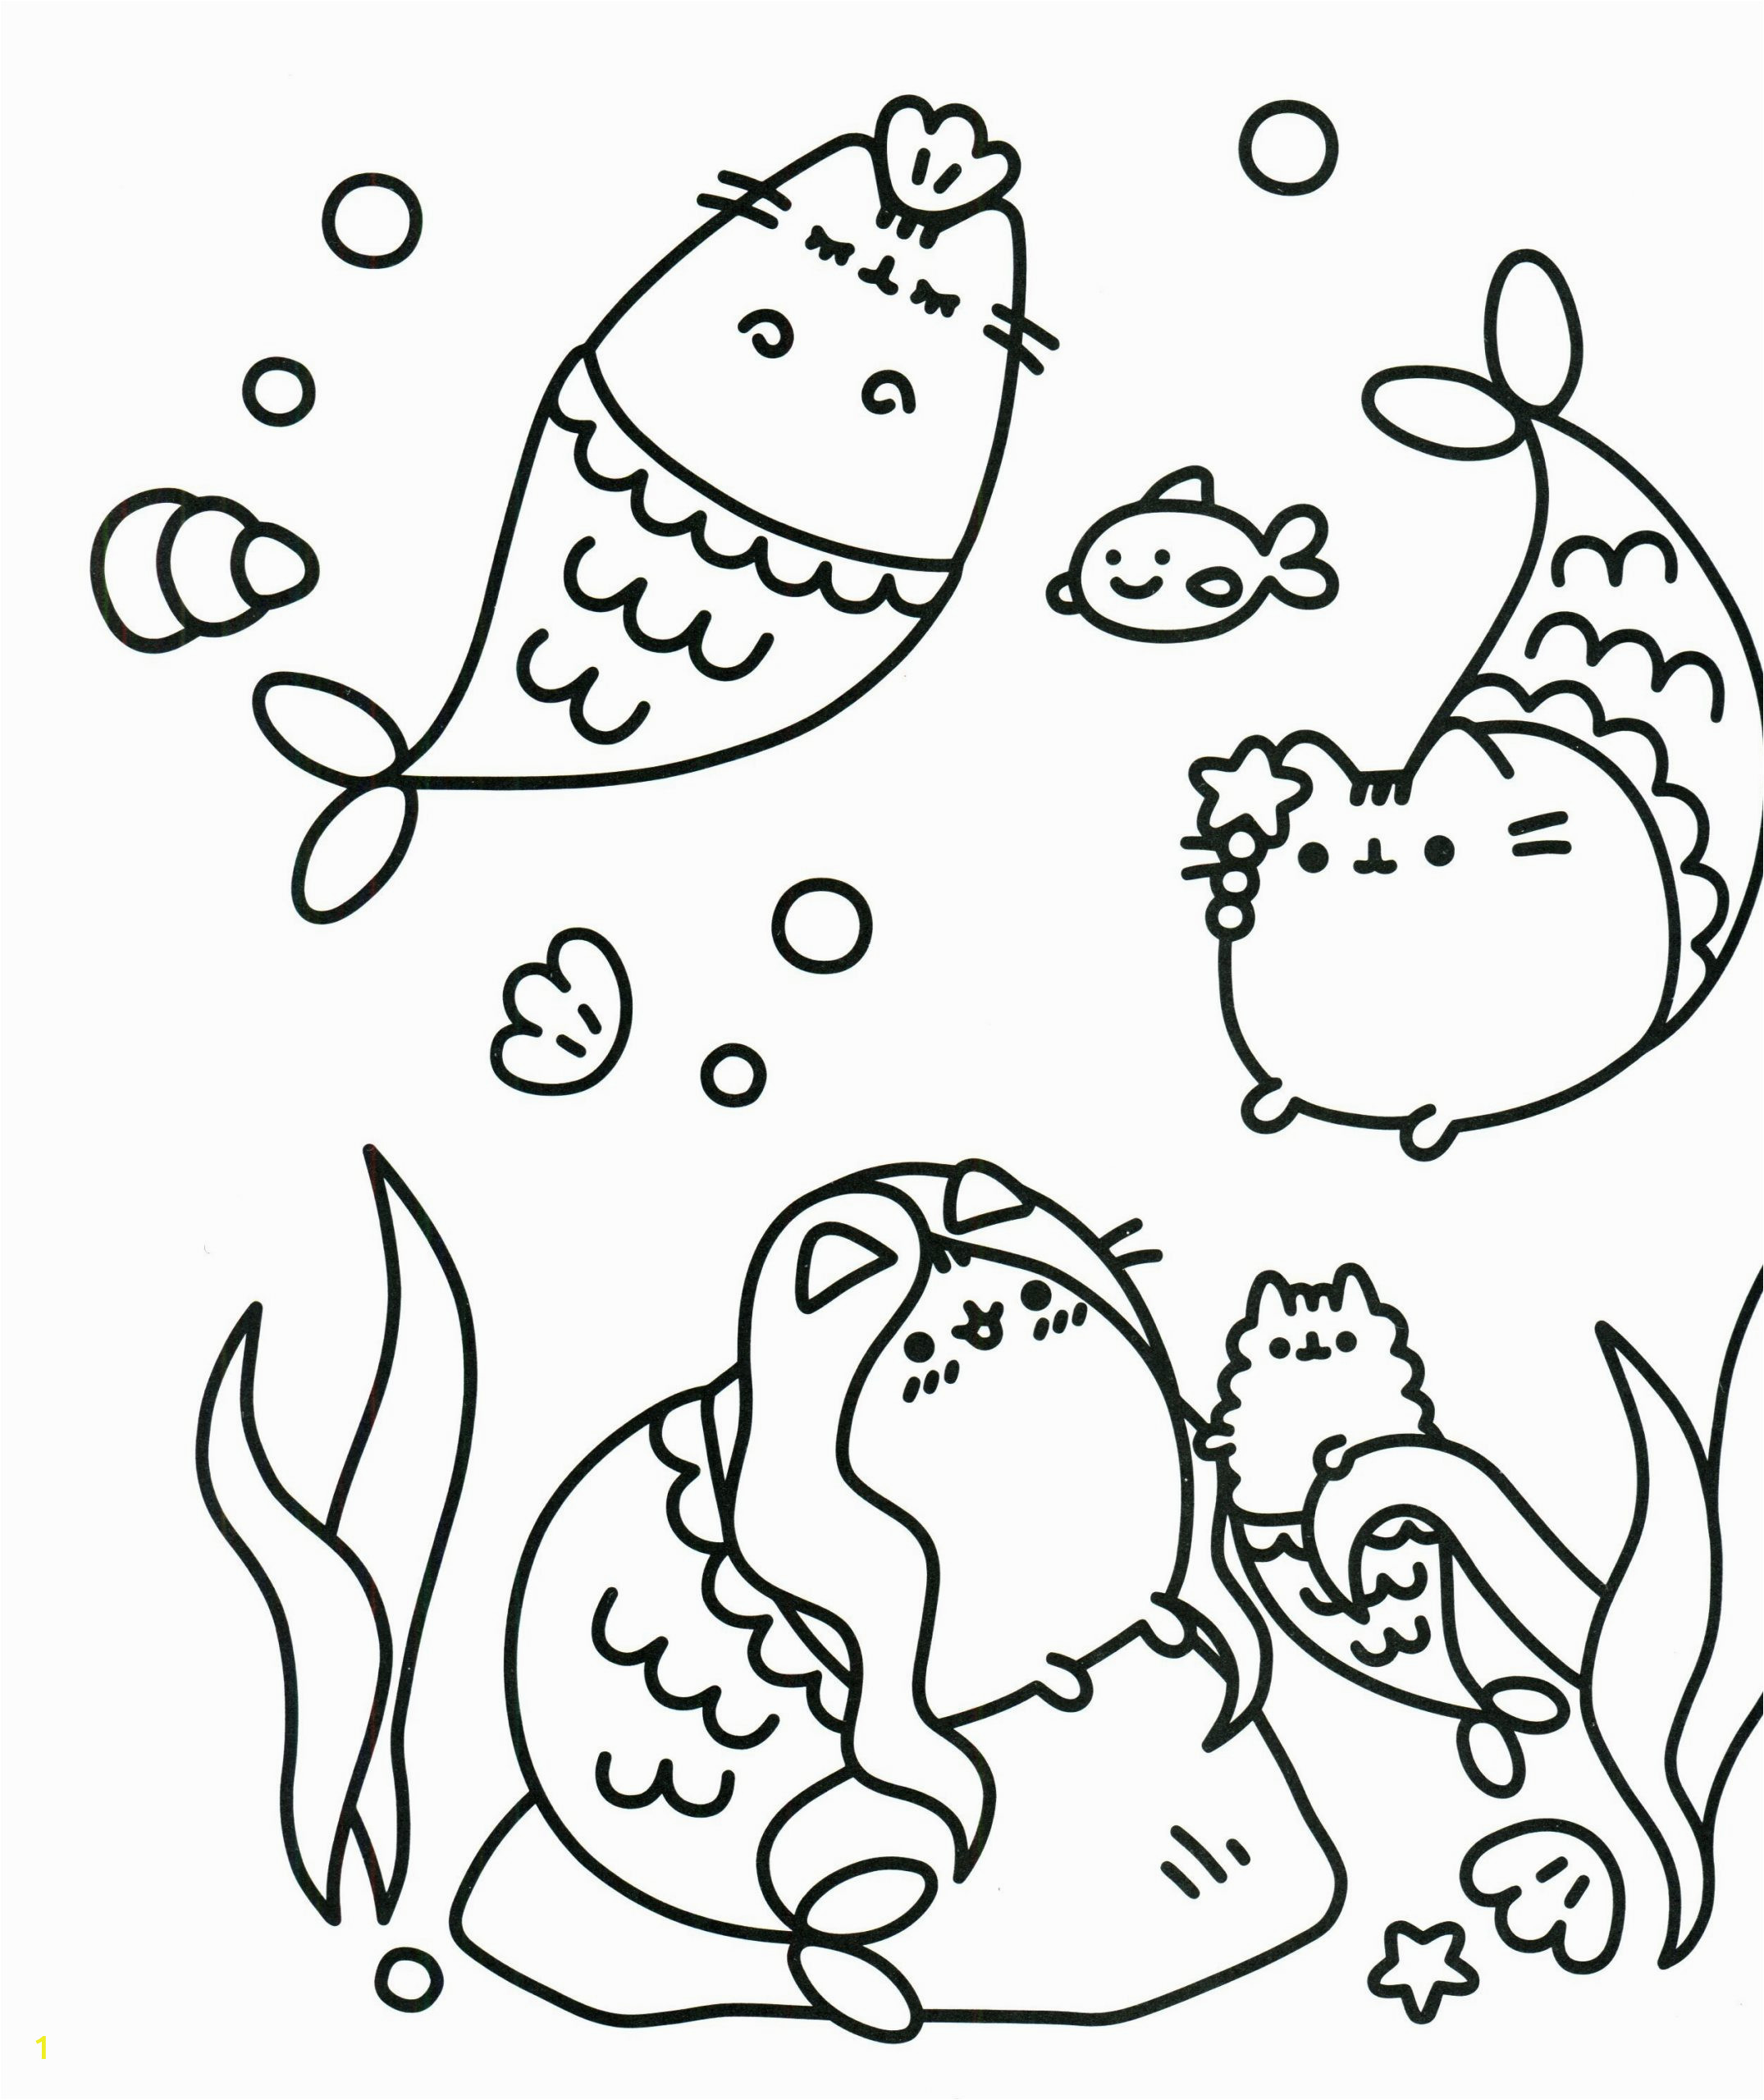 disney kawaii coloring pages fresh page sheets image inspirationss for kids of freeintable cute scaled